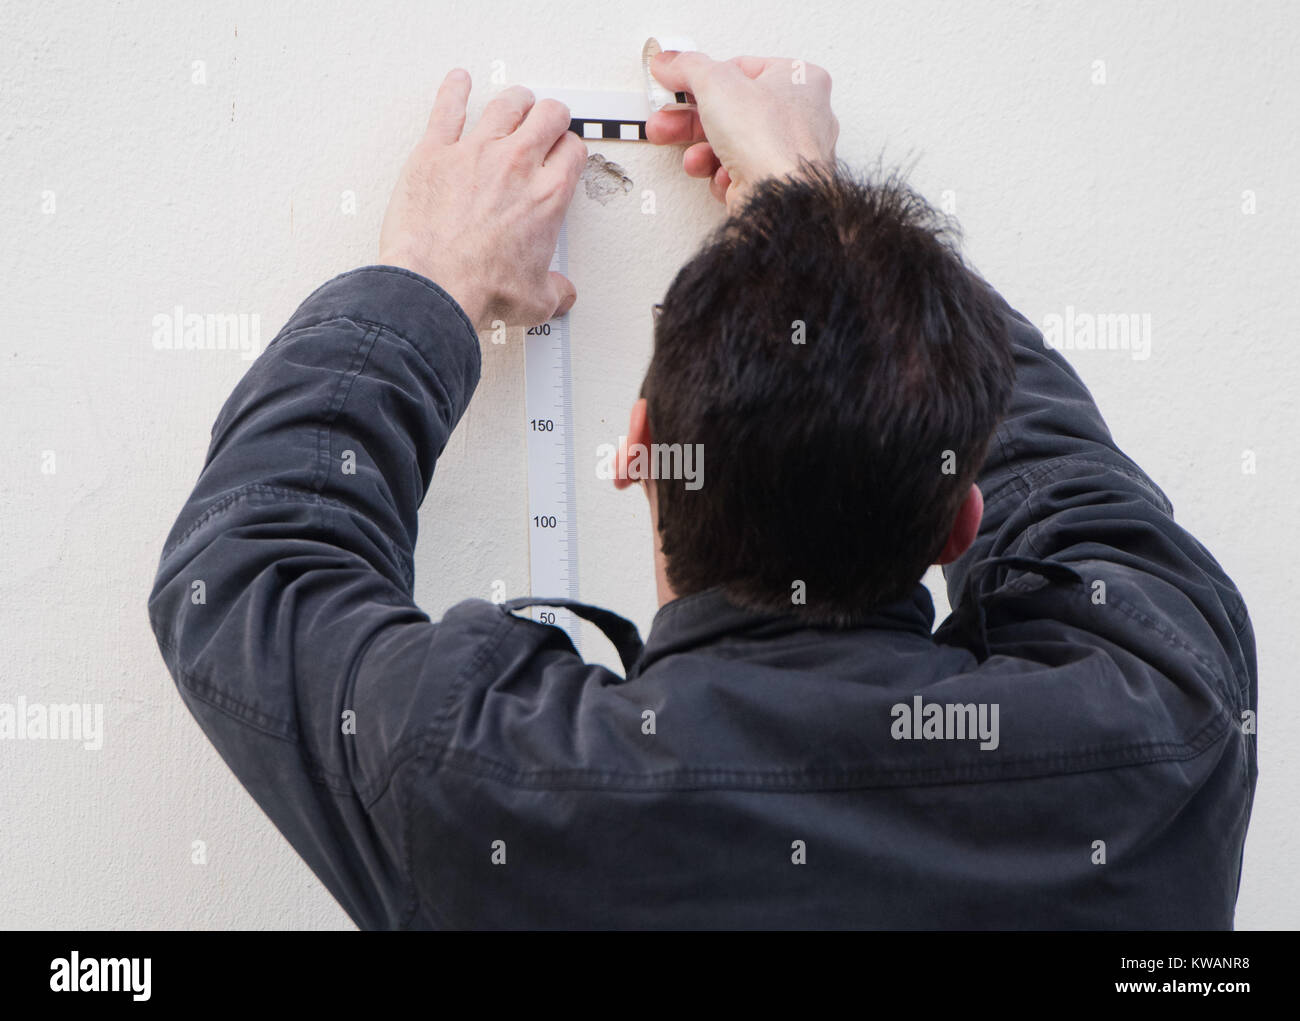 Salzgitter, Germany. 2nd Jan, 2017. A member of the crime scene unit of the police takes probes from a damaged wall, - Stock Image